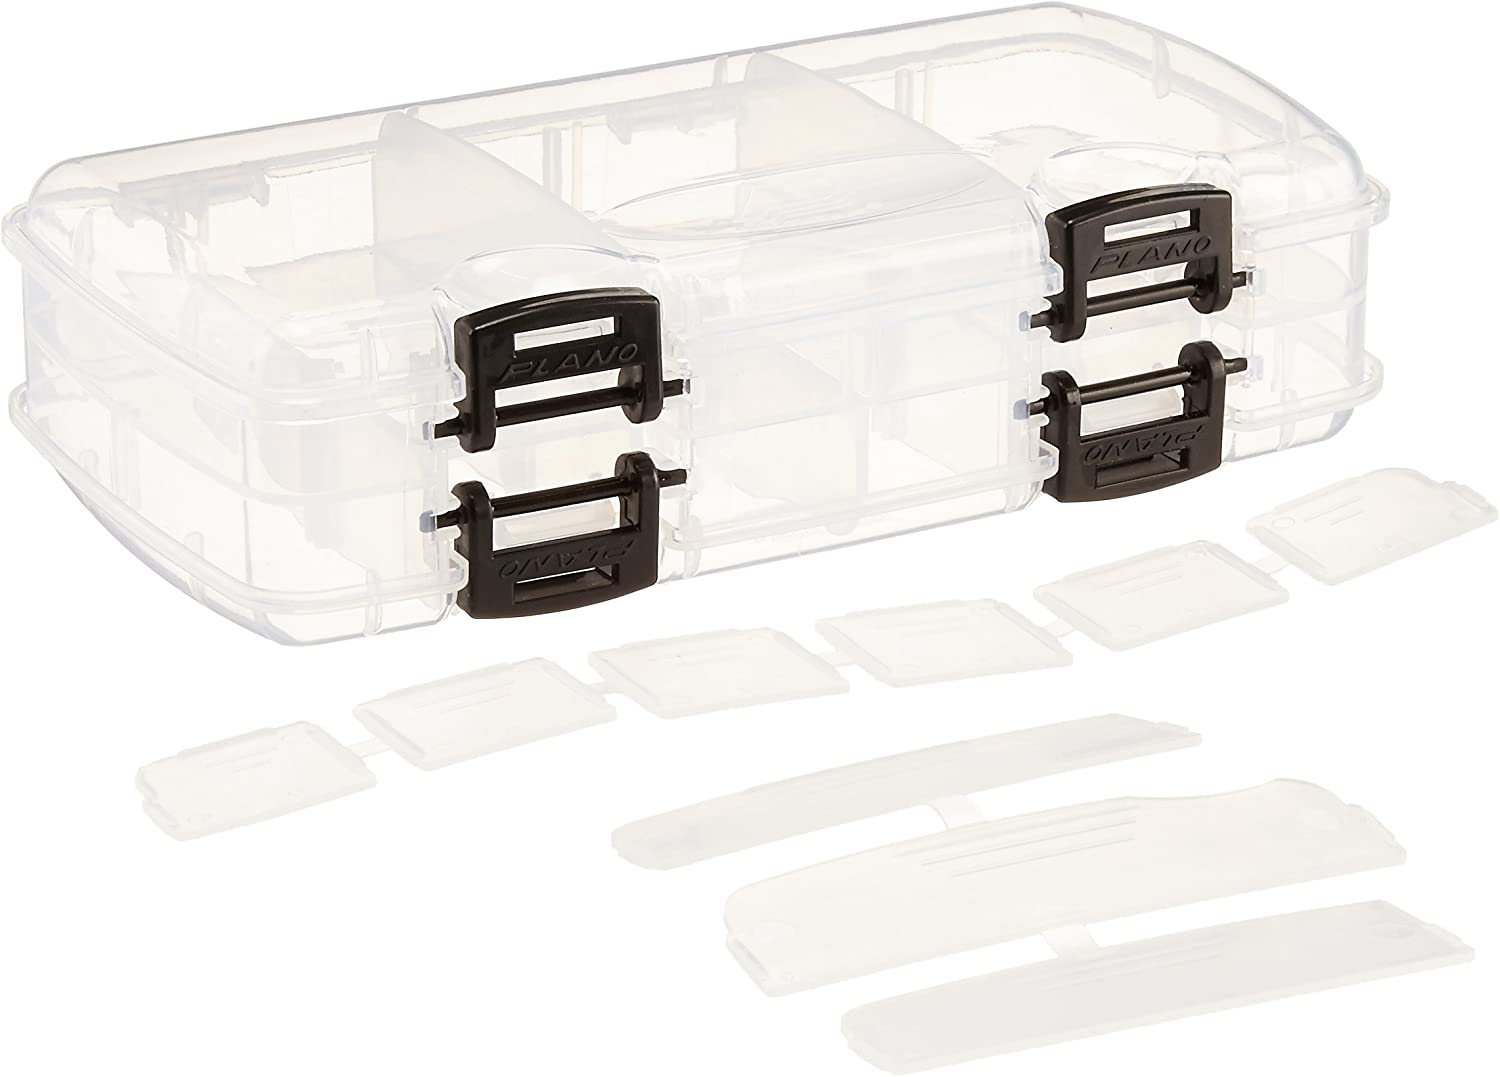 Plano 3450-23 Double-Sided Tackle Box, Premium Tackle Storage: Sports & Outdoors